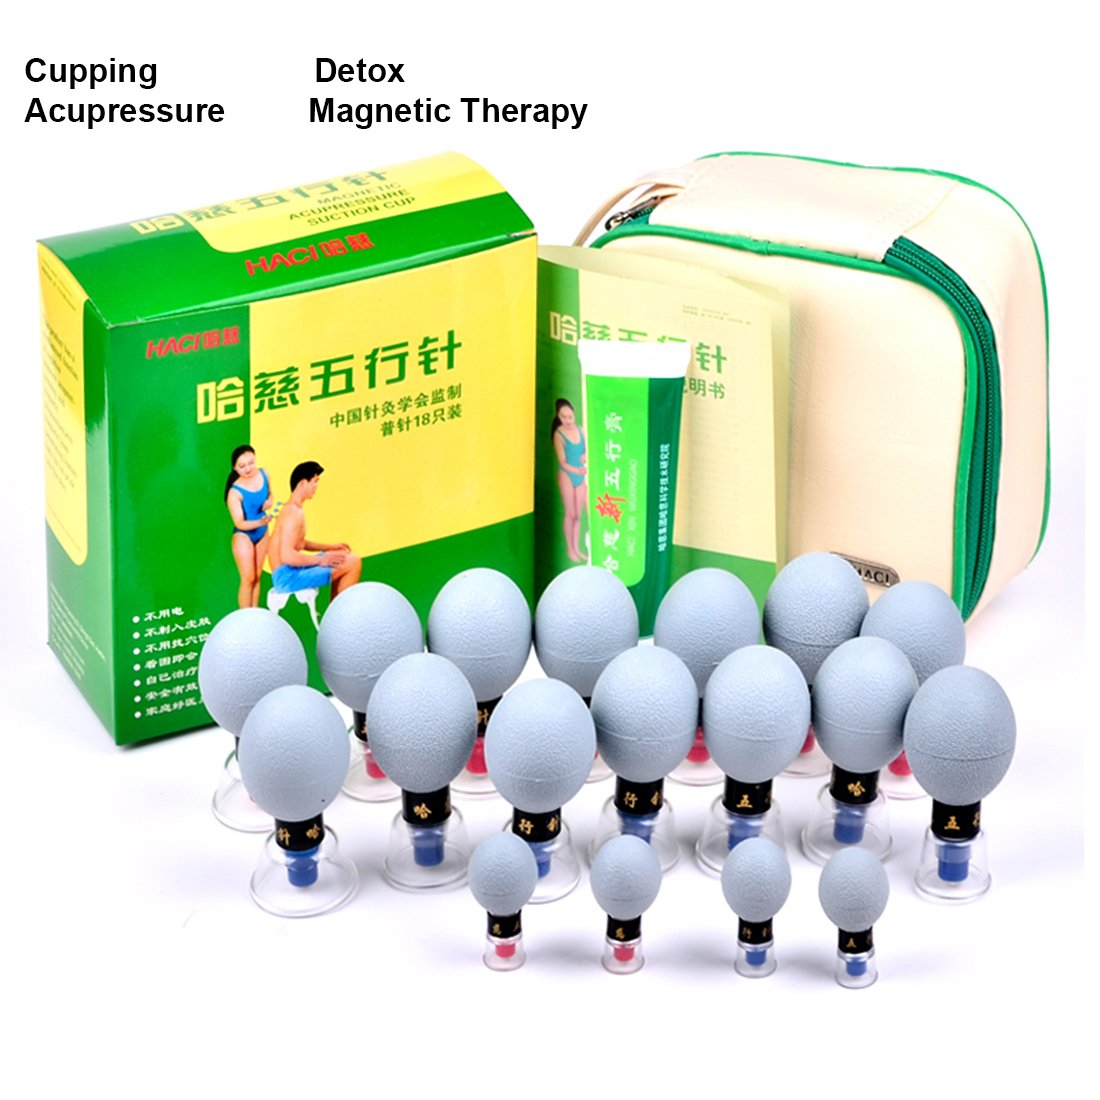 18 Cups Household Cupping Vacuum Suction Haci Magnetic Therapy Acupressure Cup TCM Acupuncture and Moxibustion Cupping Set Health Care (18) by Wanerone